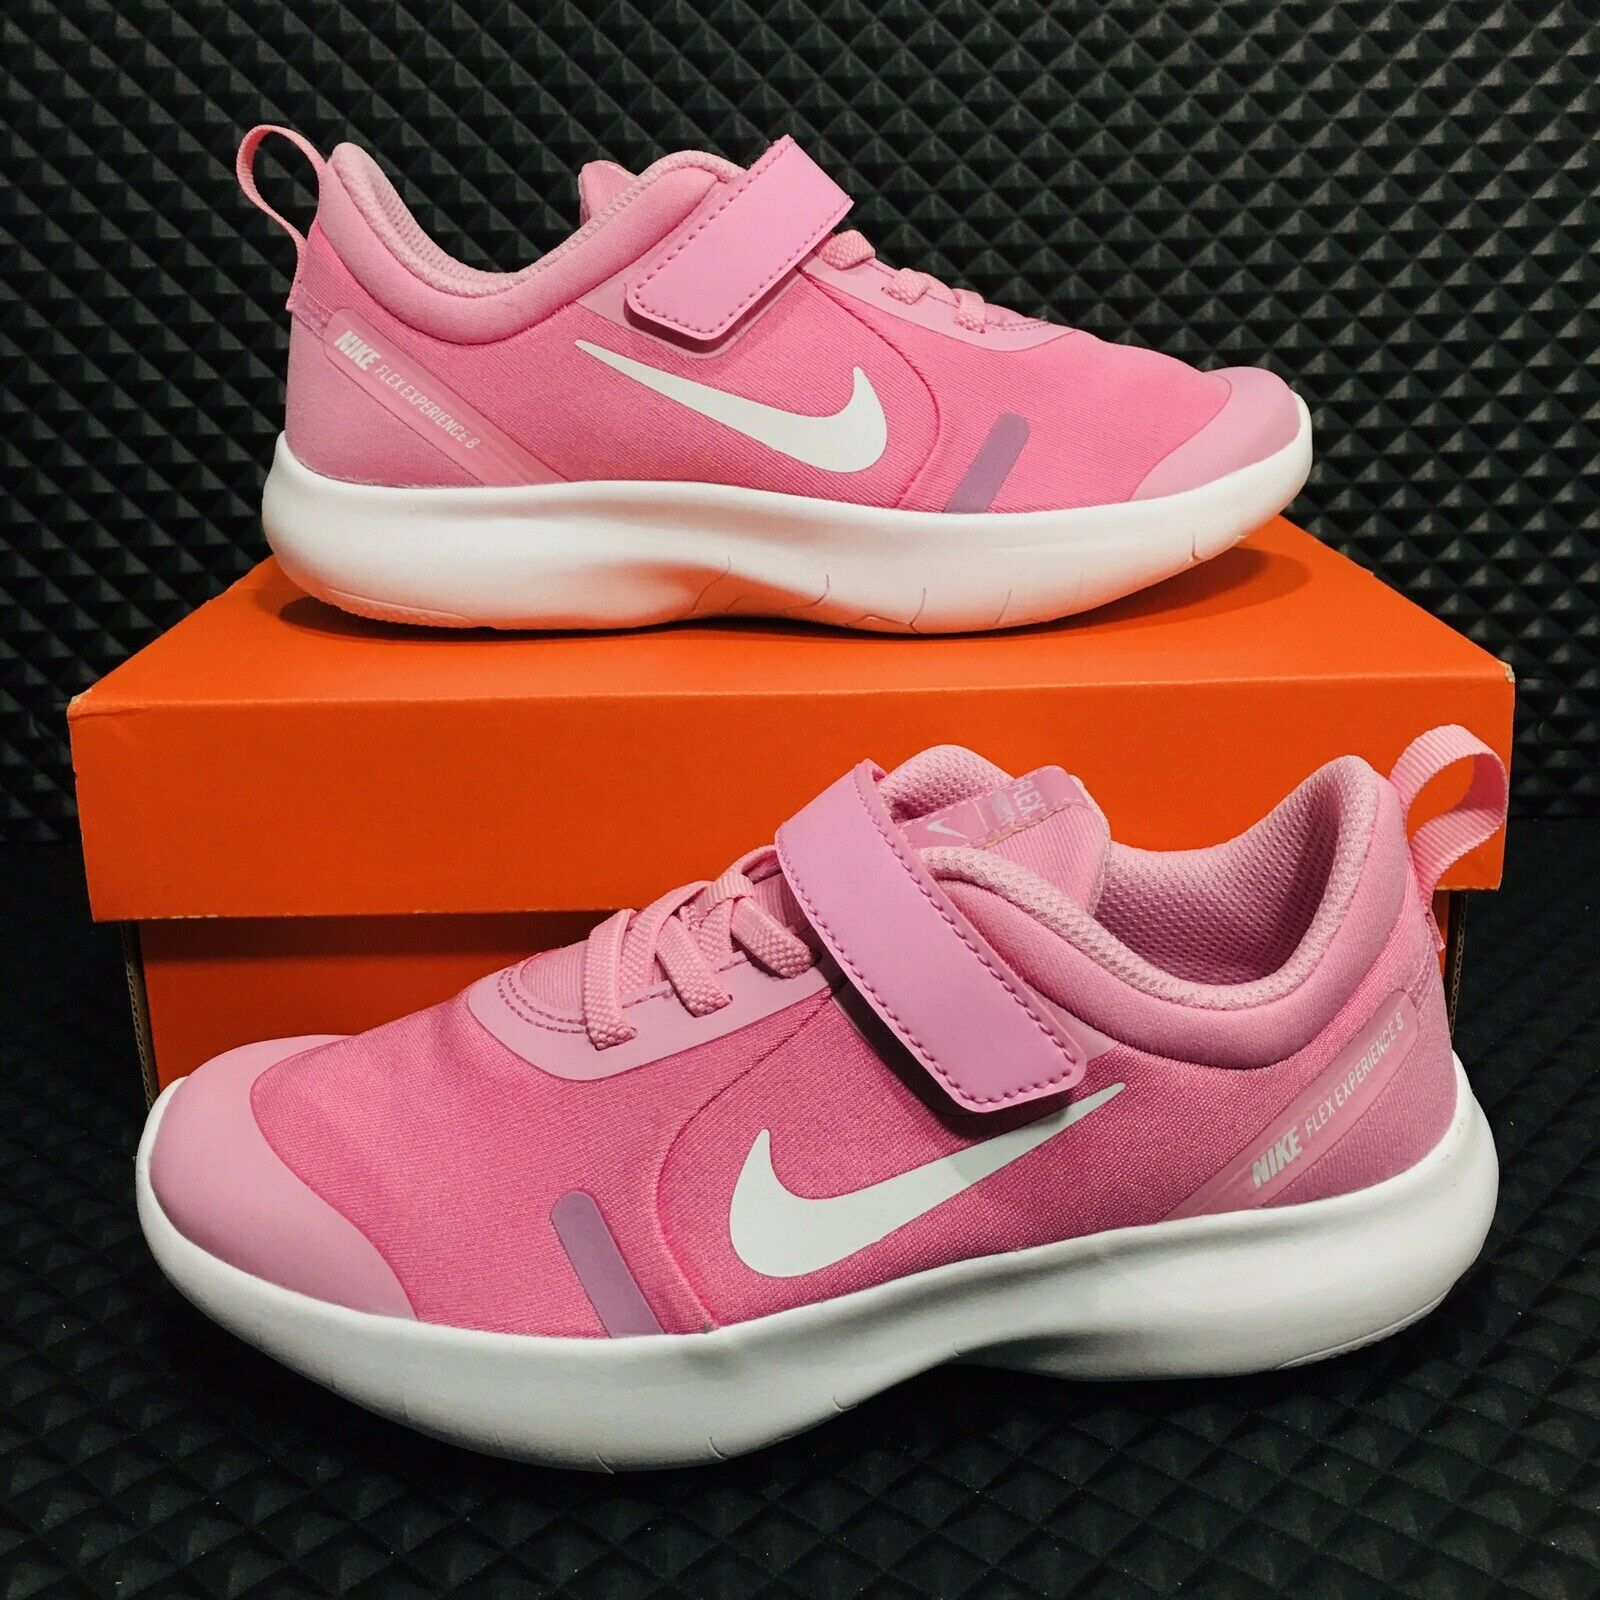 Nike Flex Experience 2 SNEAKERS Shoes